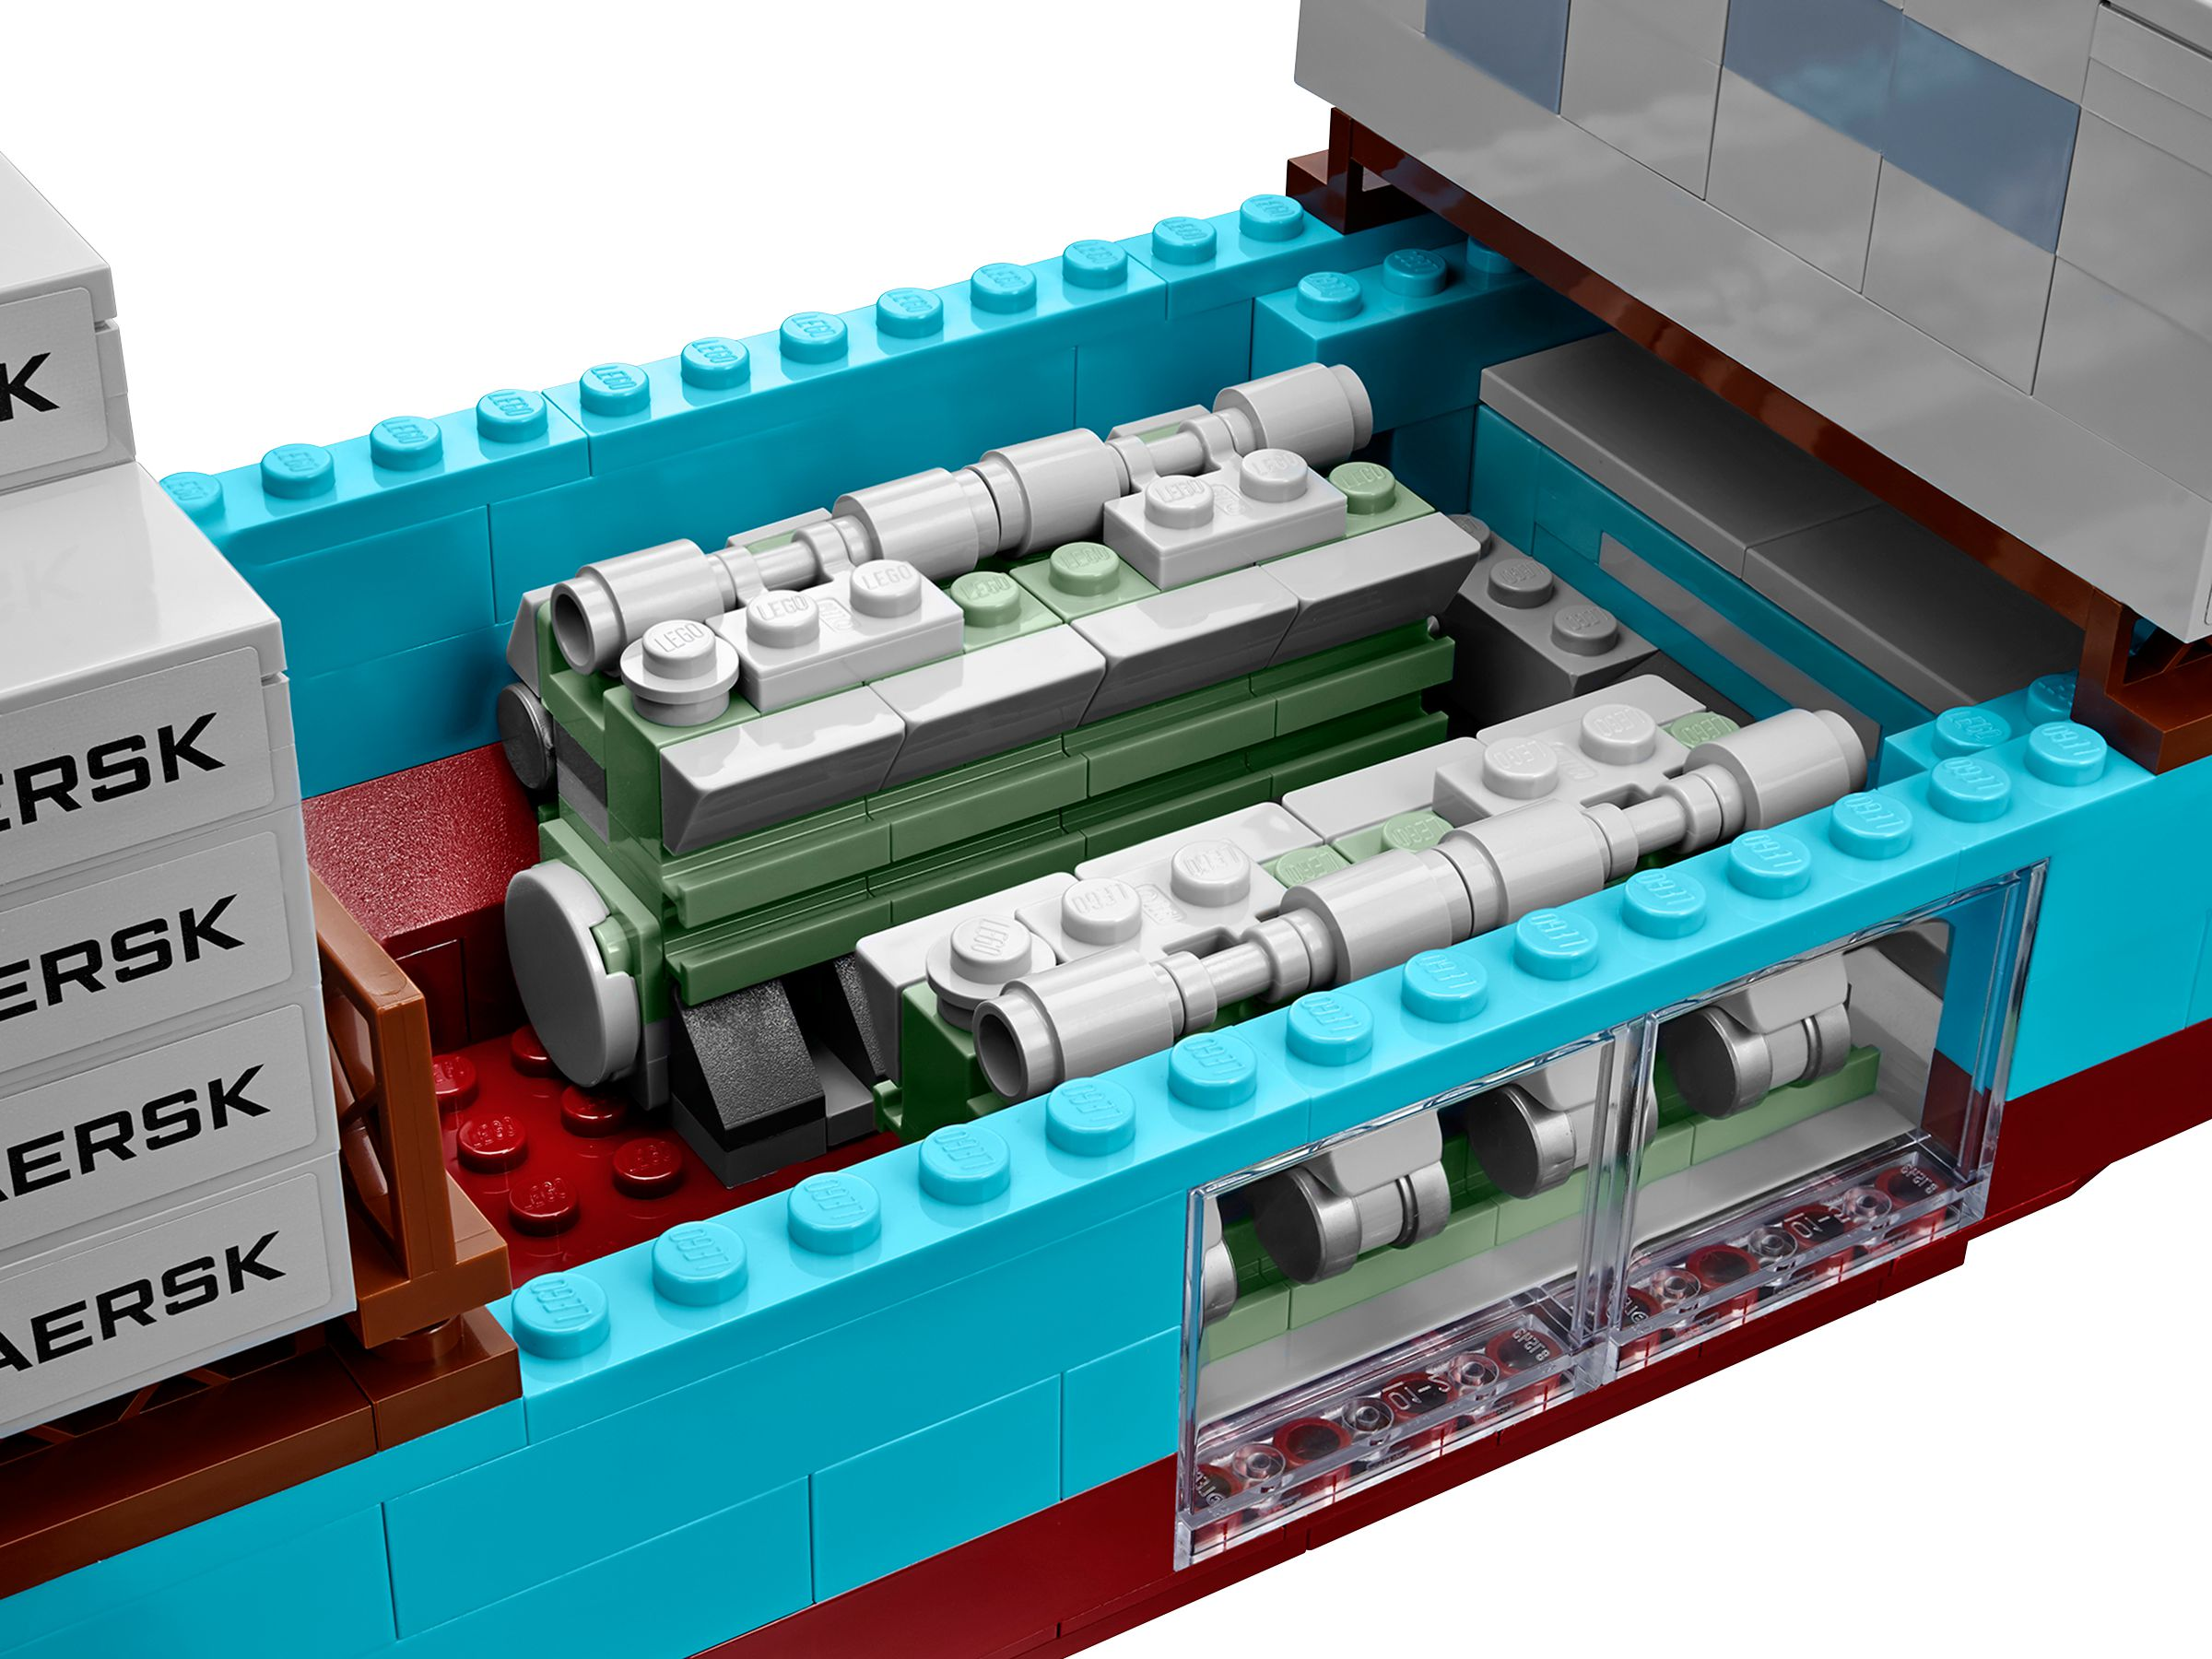 LEGO Advanced Models 10241 Maersk Containerschiff LEGO_10241_alt2.jpg